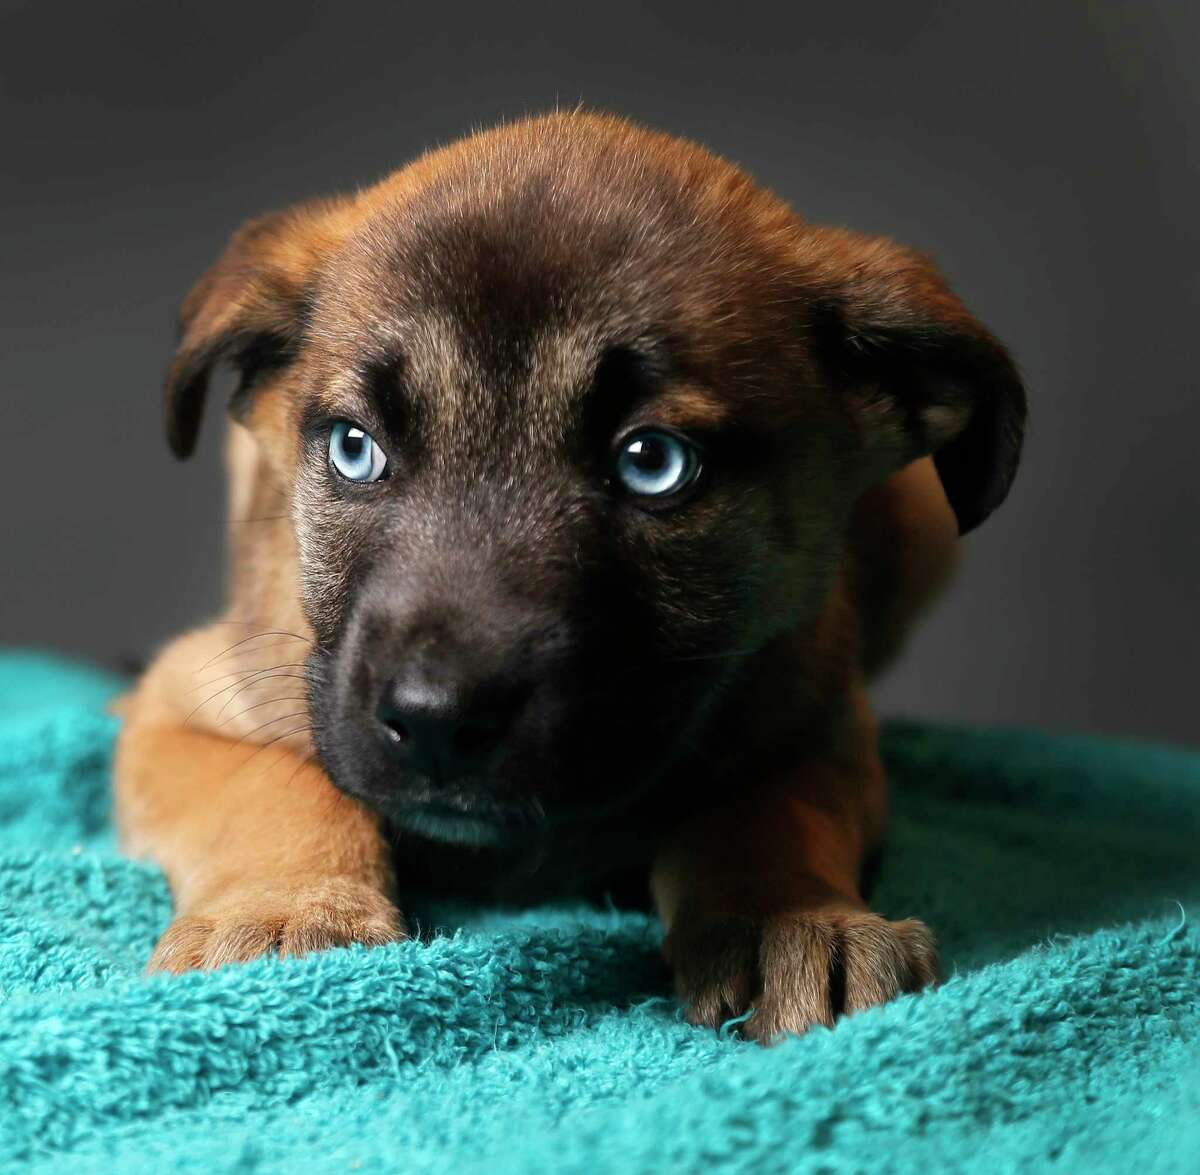 Sienna is a 2-month-old, female, German Shepherd/Siberian Husky mix and is ready to be adopted from BARC Houston Animal Shelter. (Animal ID: A1611238) Photographed Wednesday, Feb. 27, 2019, in Houston.